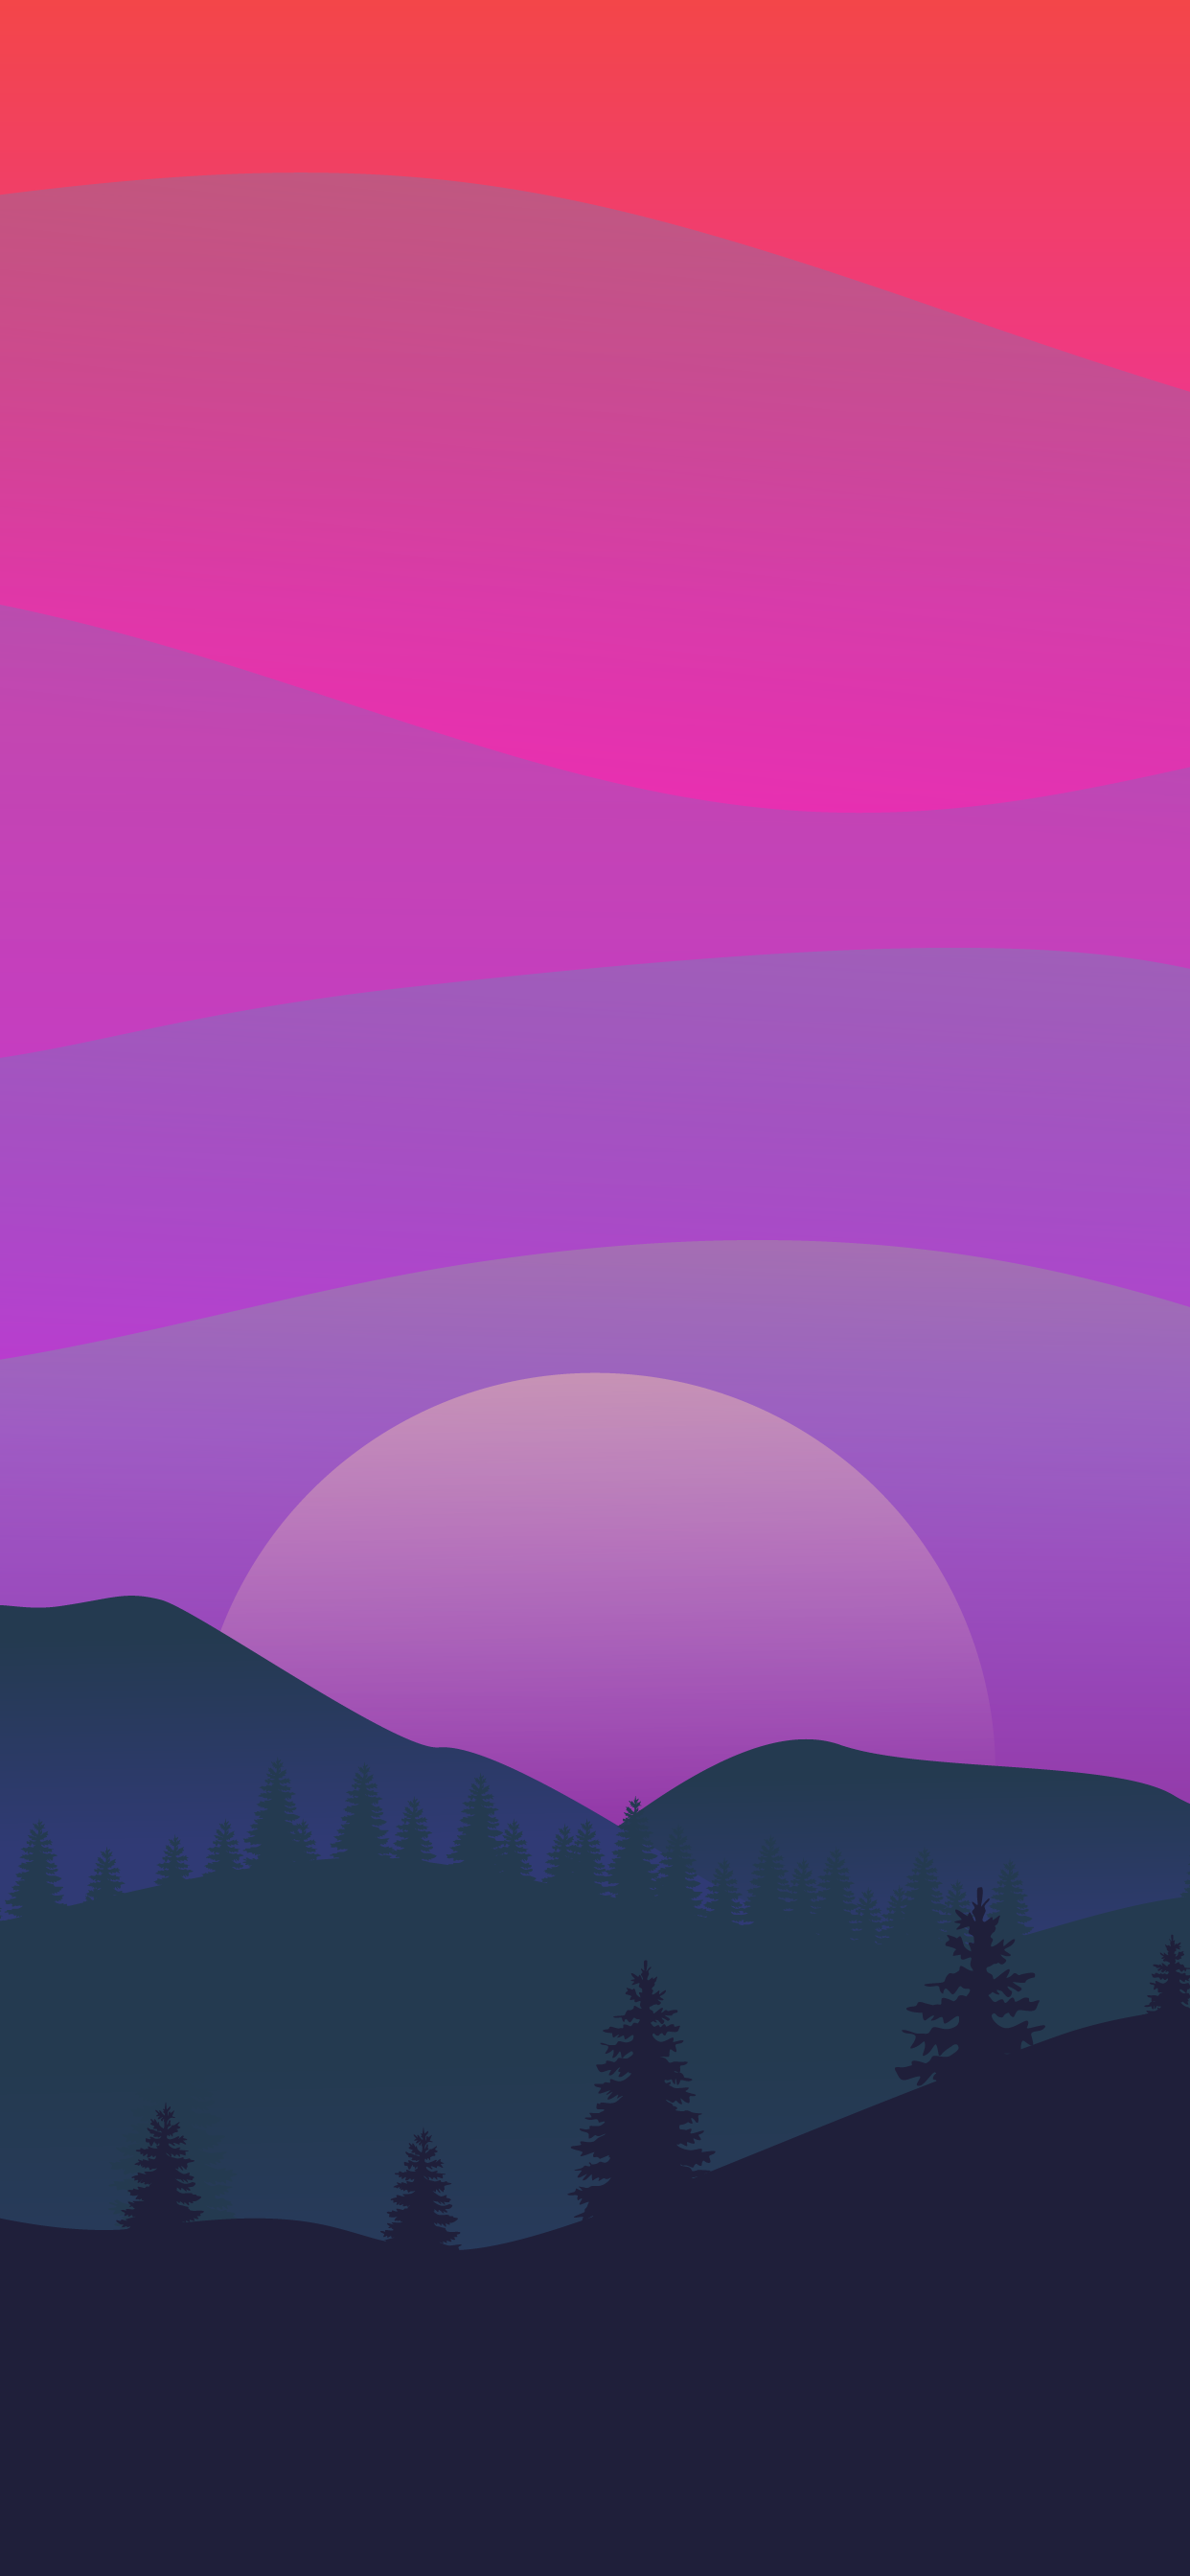 Beautiful backgroun wallpaper hd of a purple sunset landscape for iphone and others mobile phone